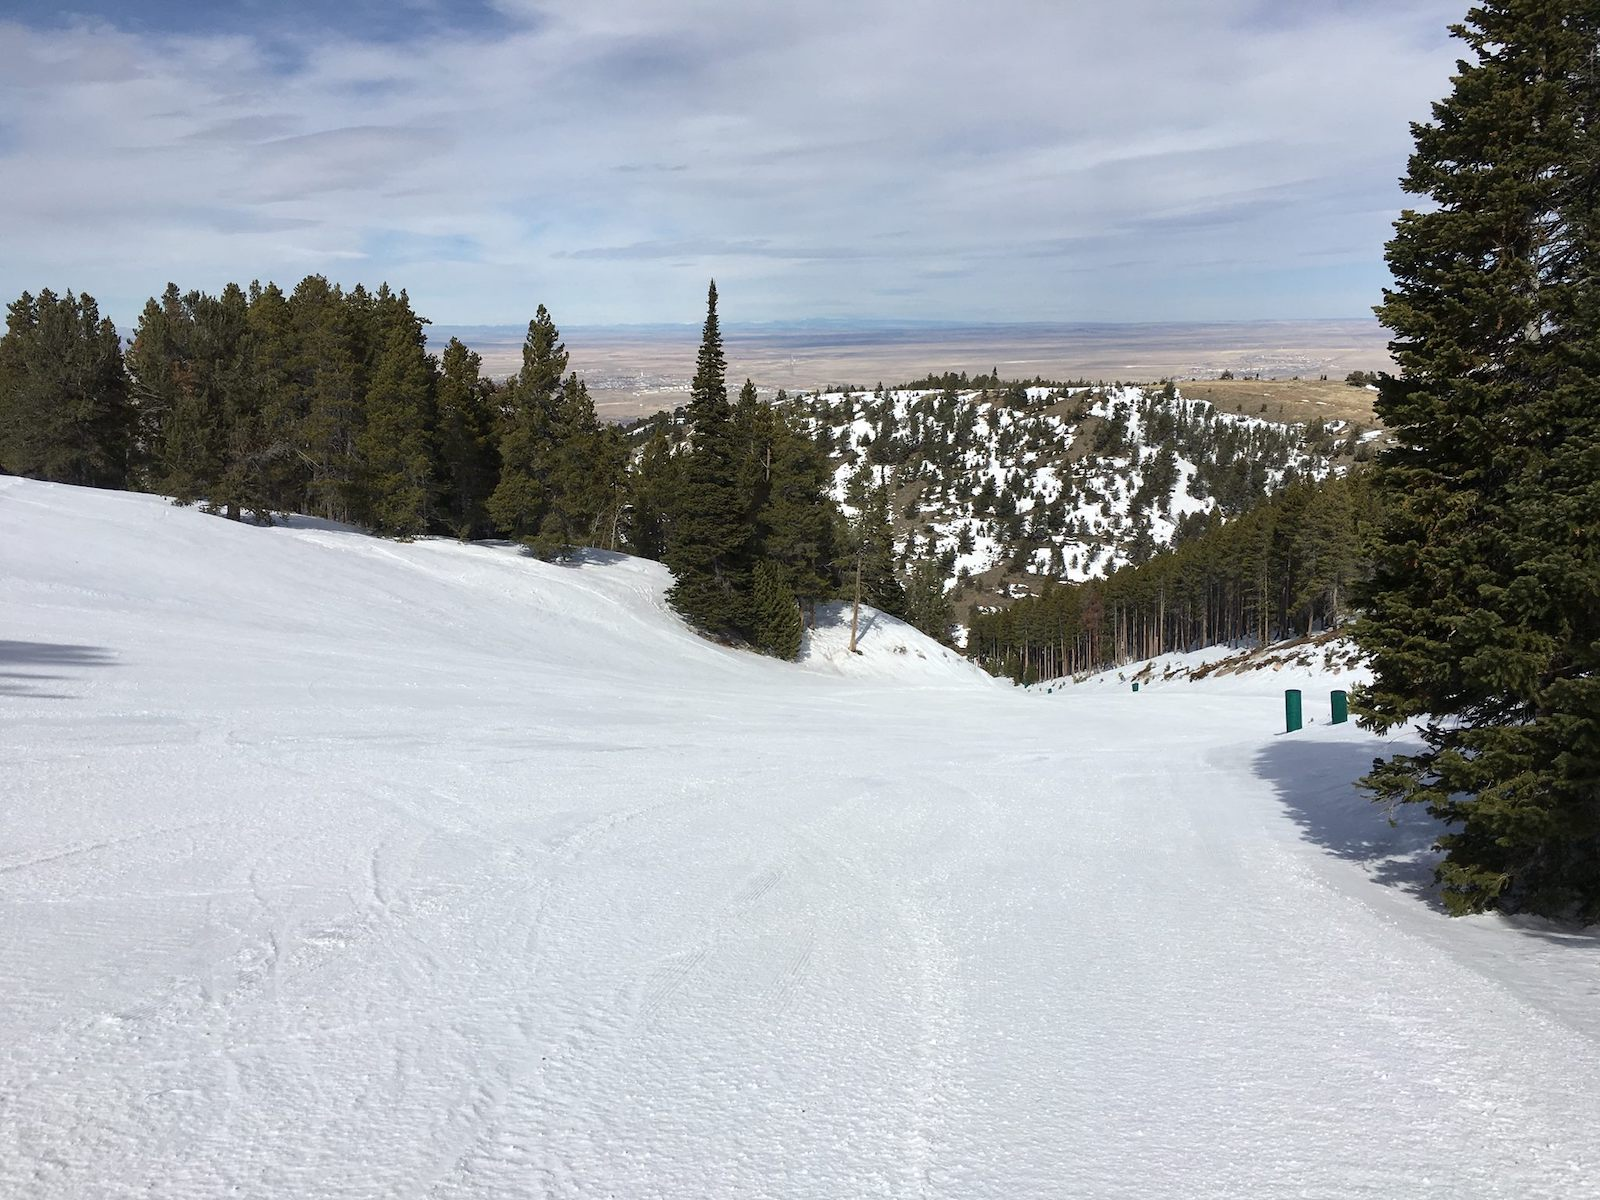 Image looking down one of the empty slopes at Hogadon Basin Ski Area in Casper, Wyoming